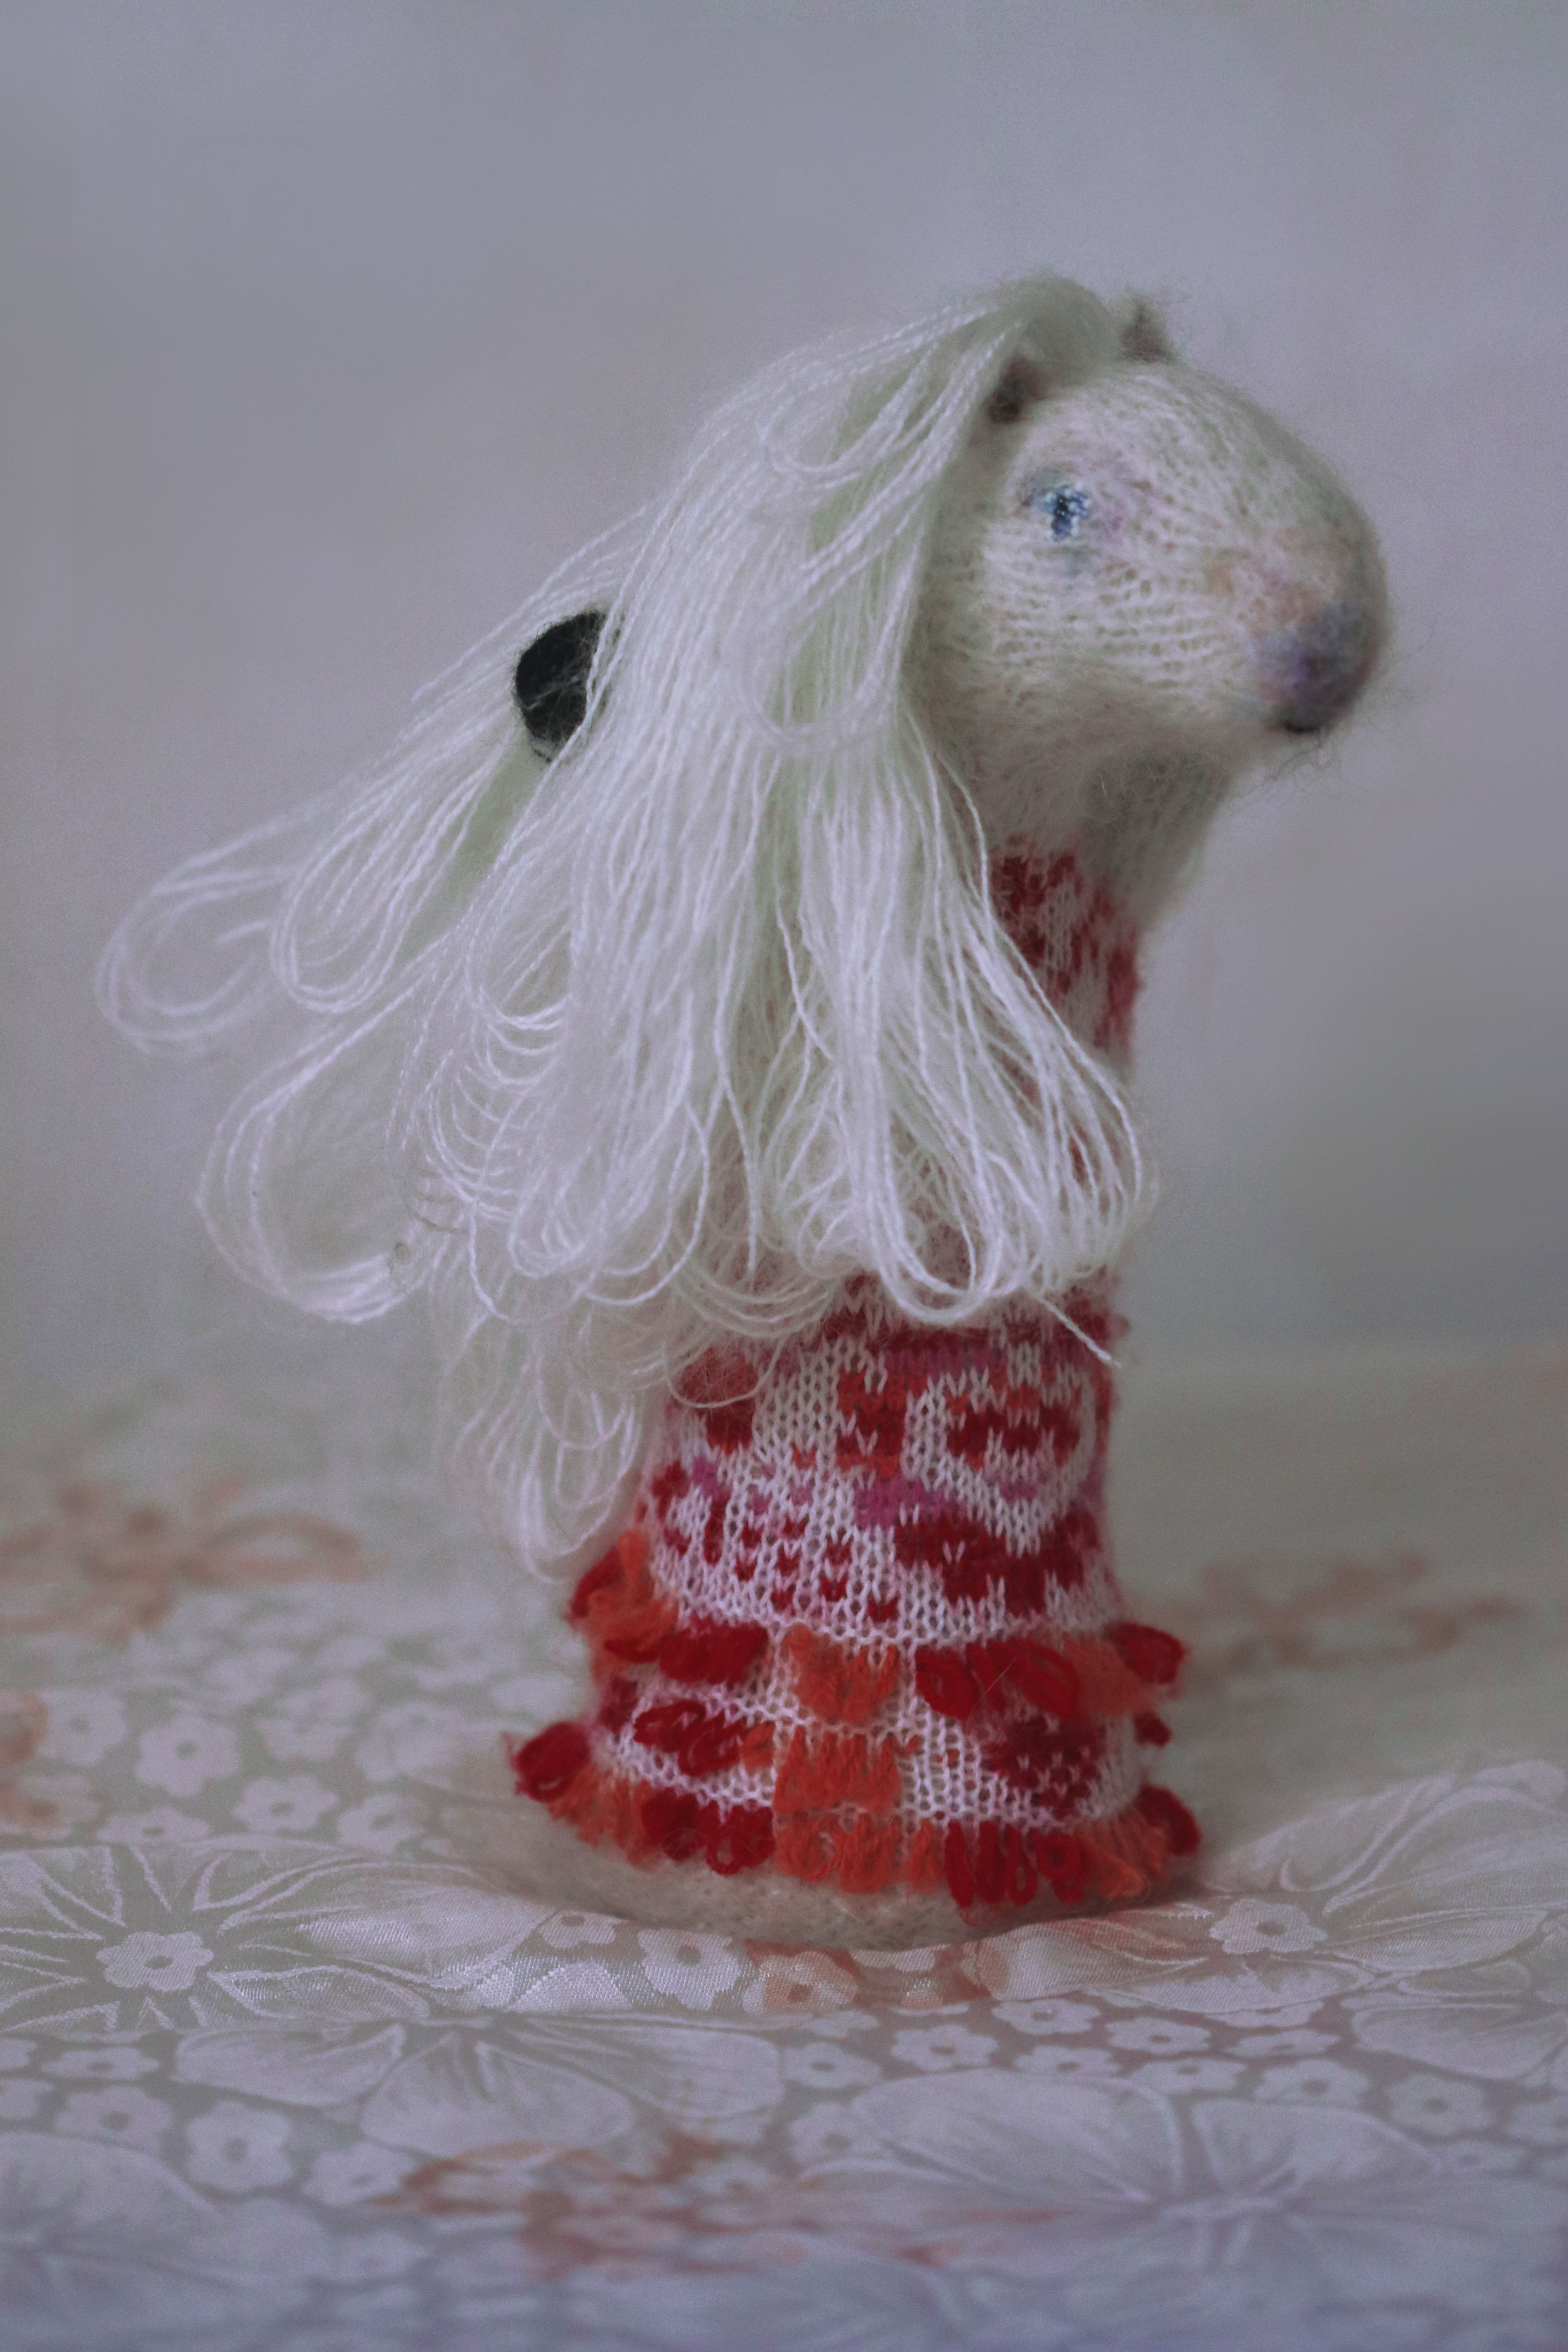 toy girl white pony orgonite gift stuffed soft red sculpture animal horse collectible knitted plush